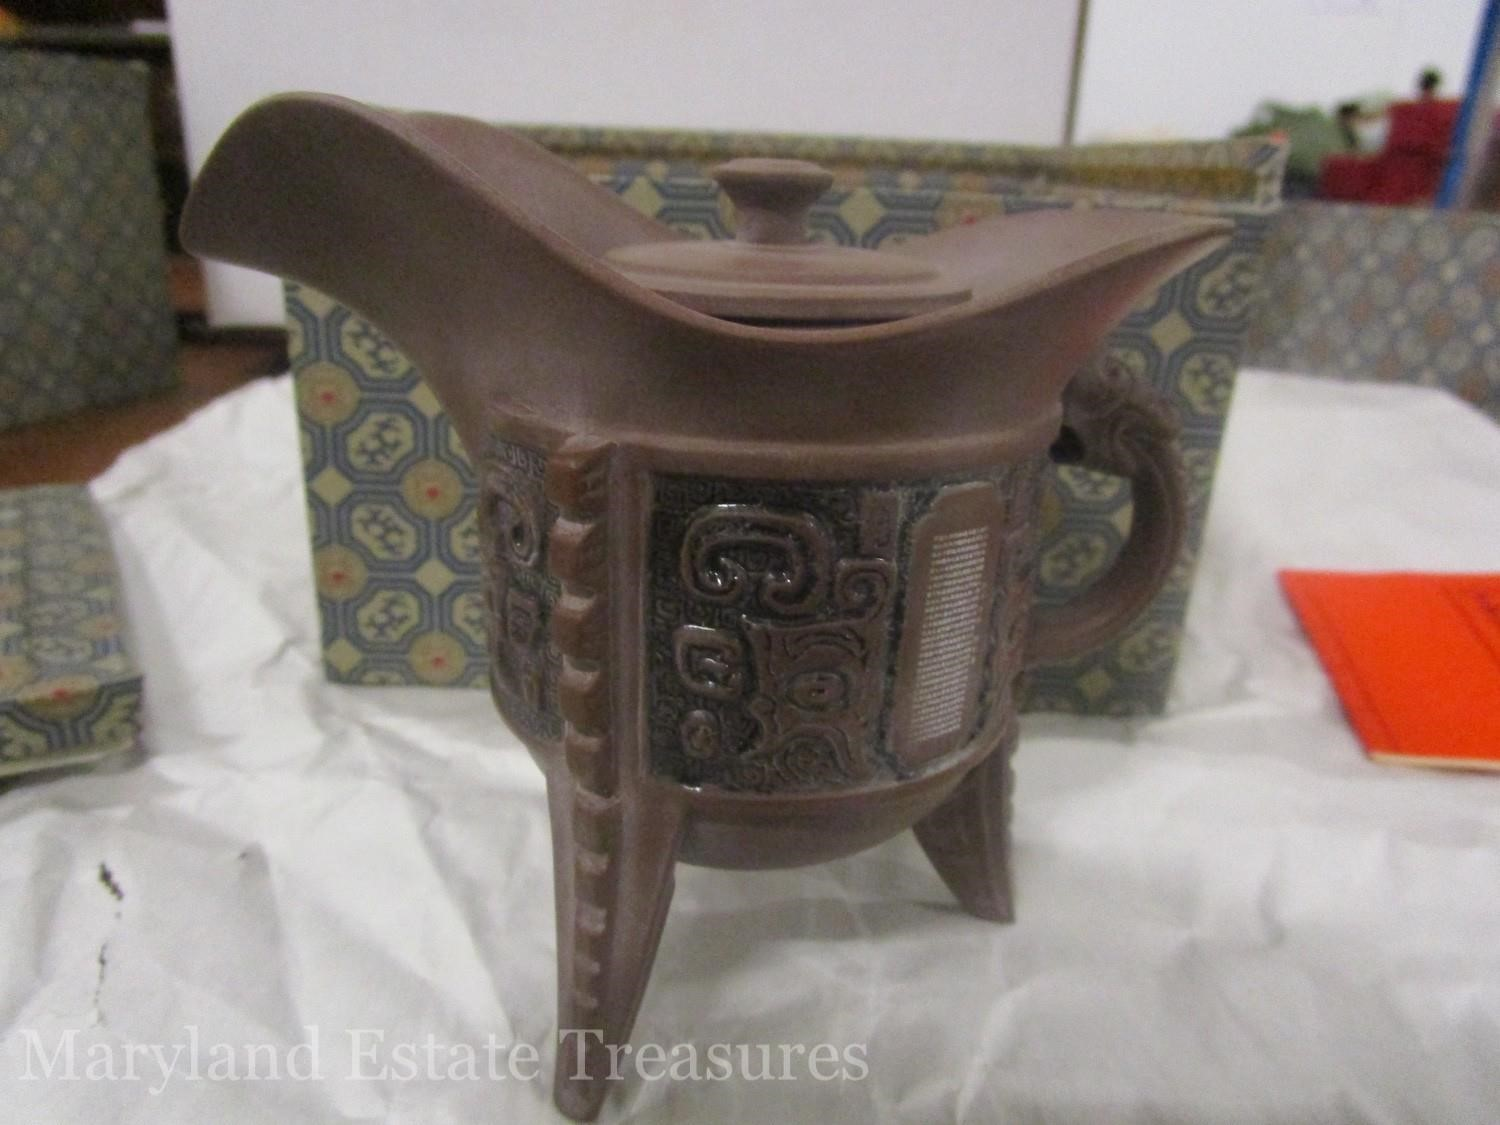 Maryland Estate Treasures Holiday Collectibles+Gifts Auction